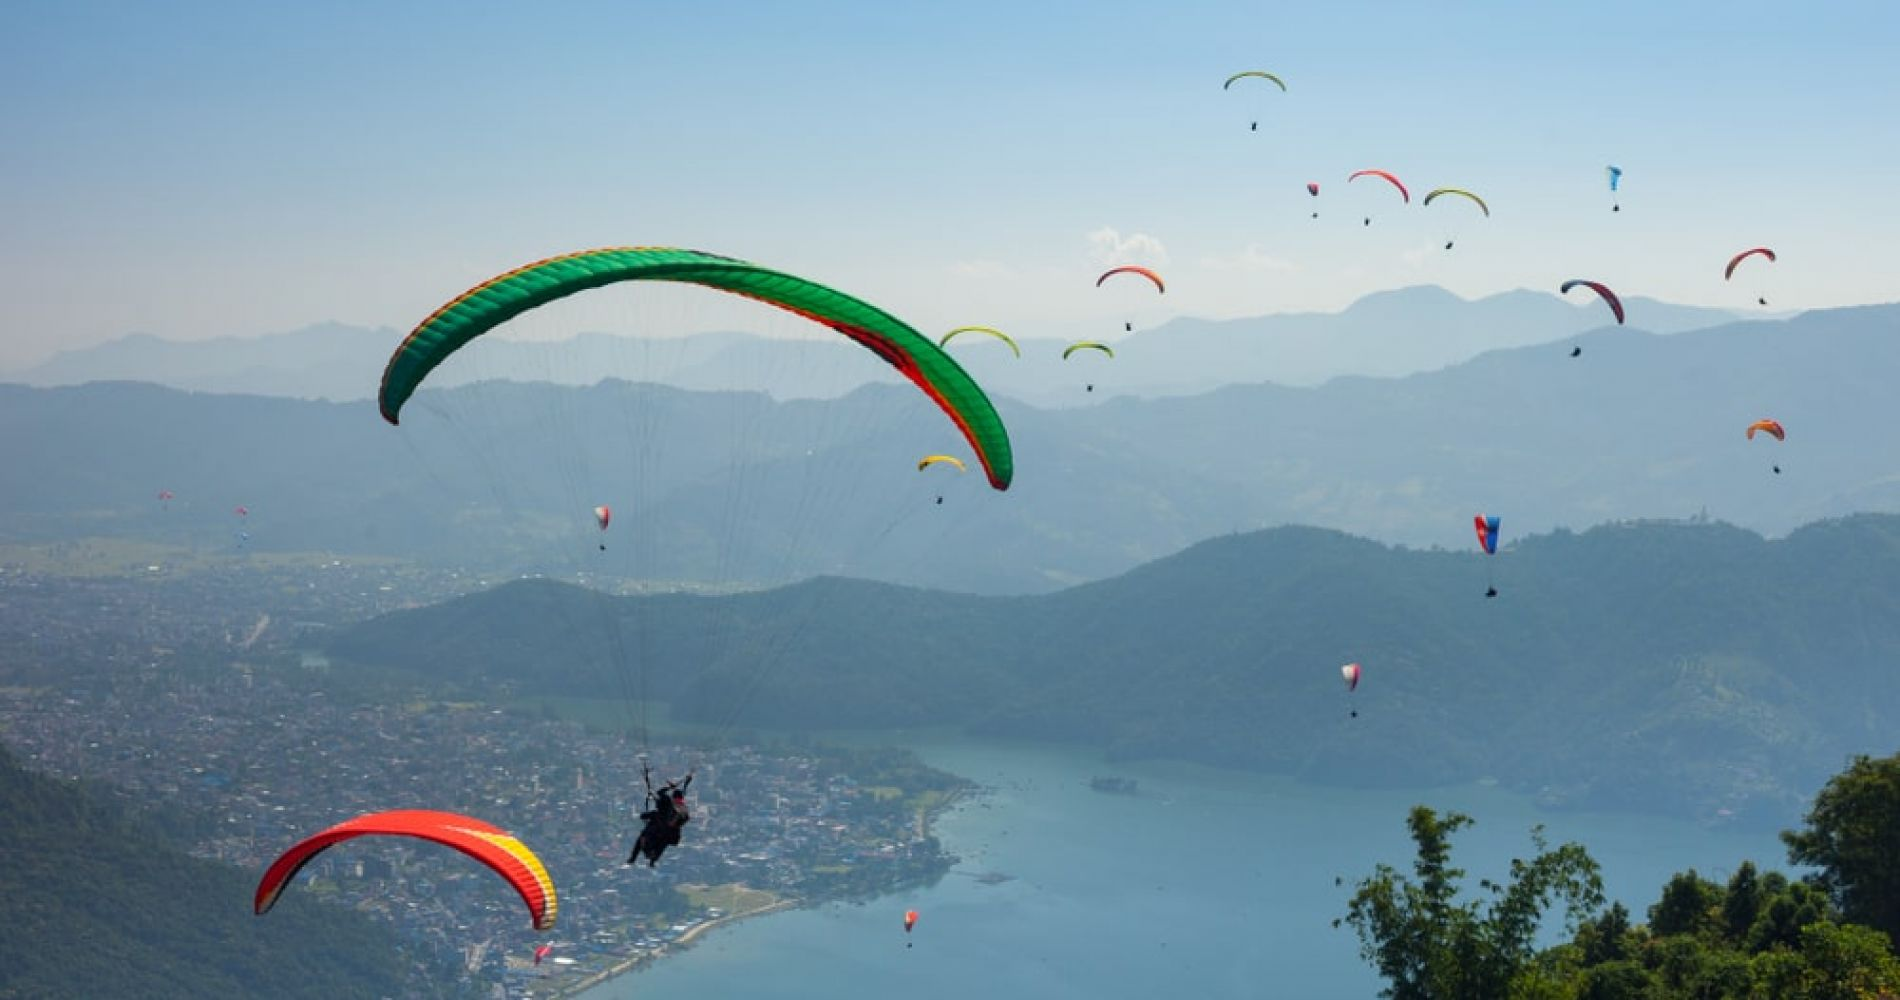 Watch Paragliders Launch and Glide above the skies of Pokhara in Nepal